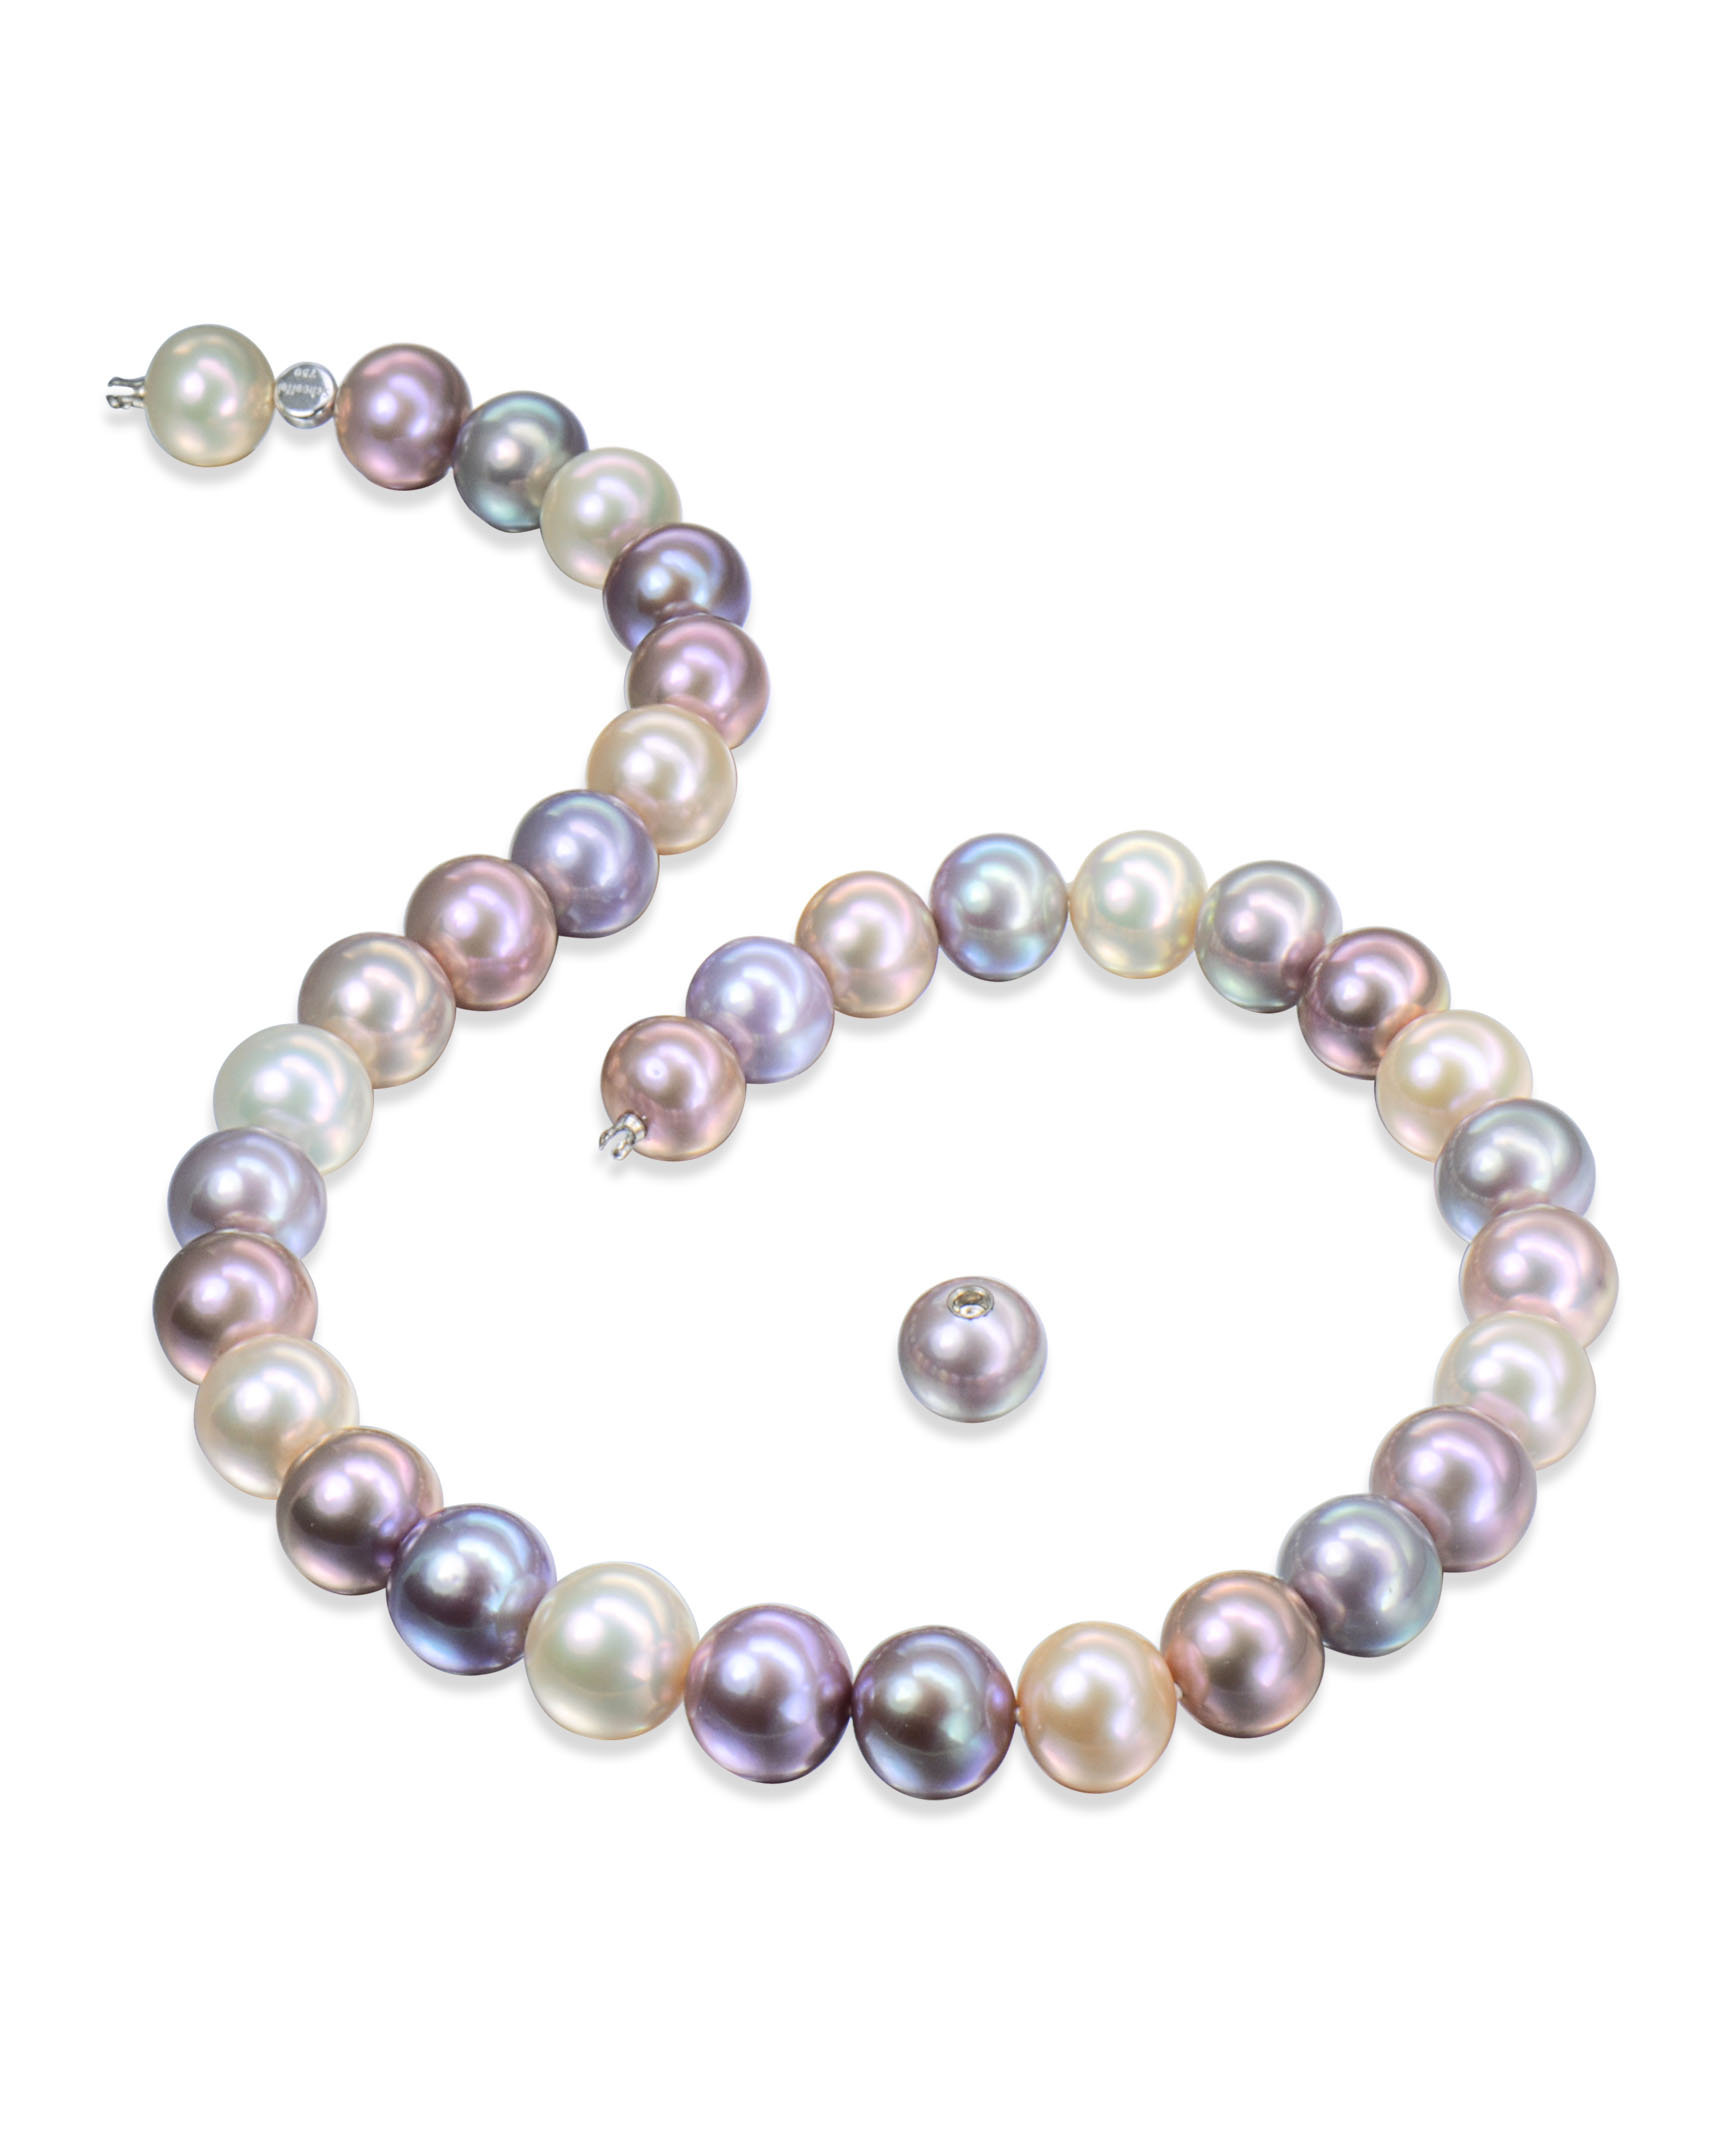 conch false jewellery subsampling product shop a one crop kind pearl of mikimoto upscale scale the editor necklace